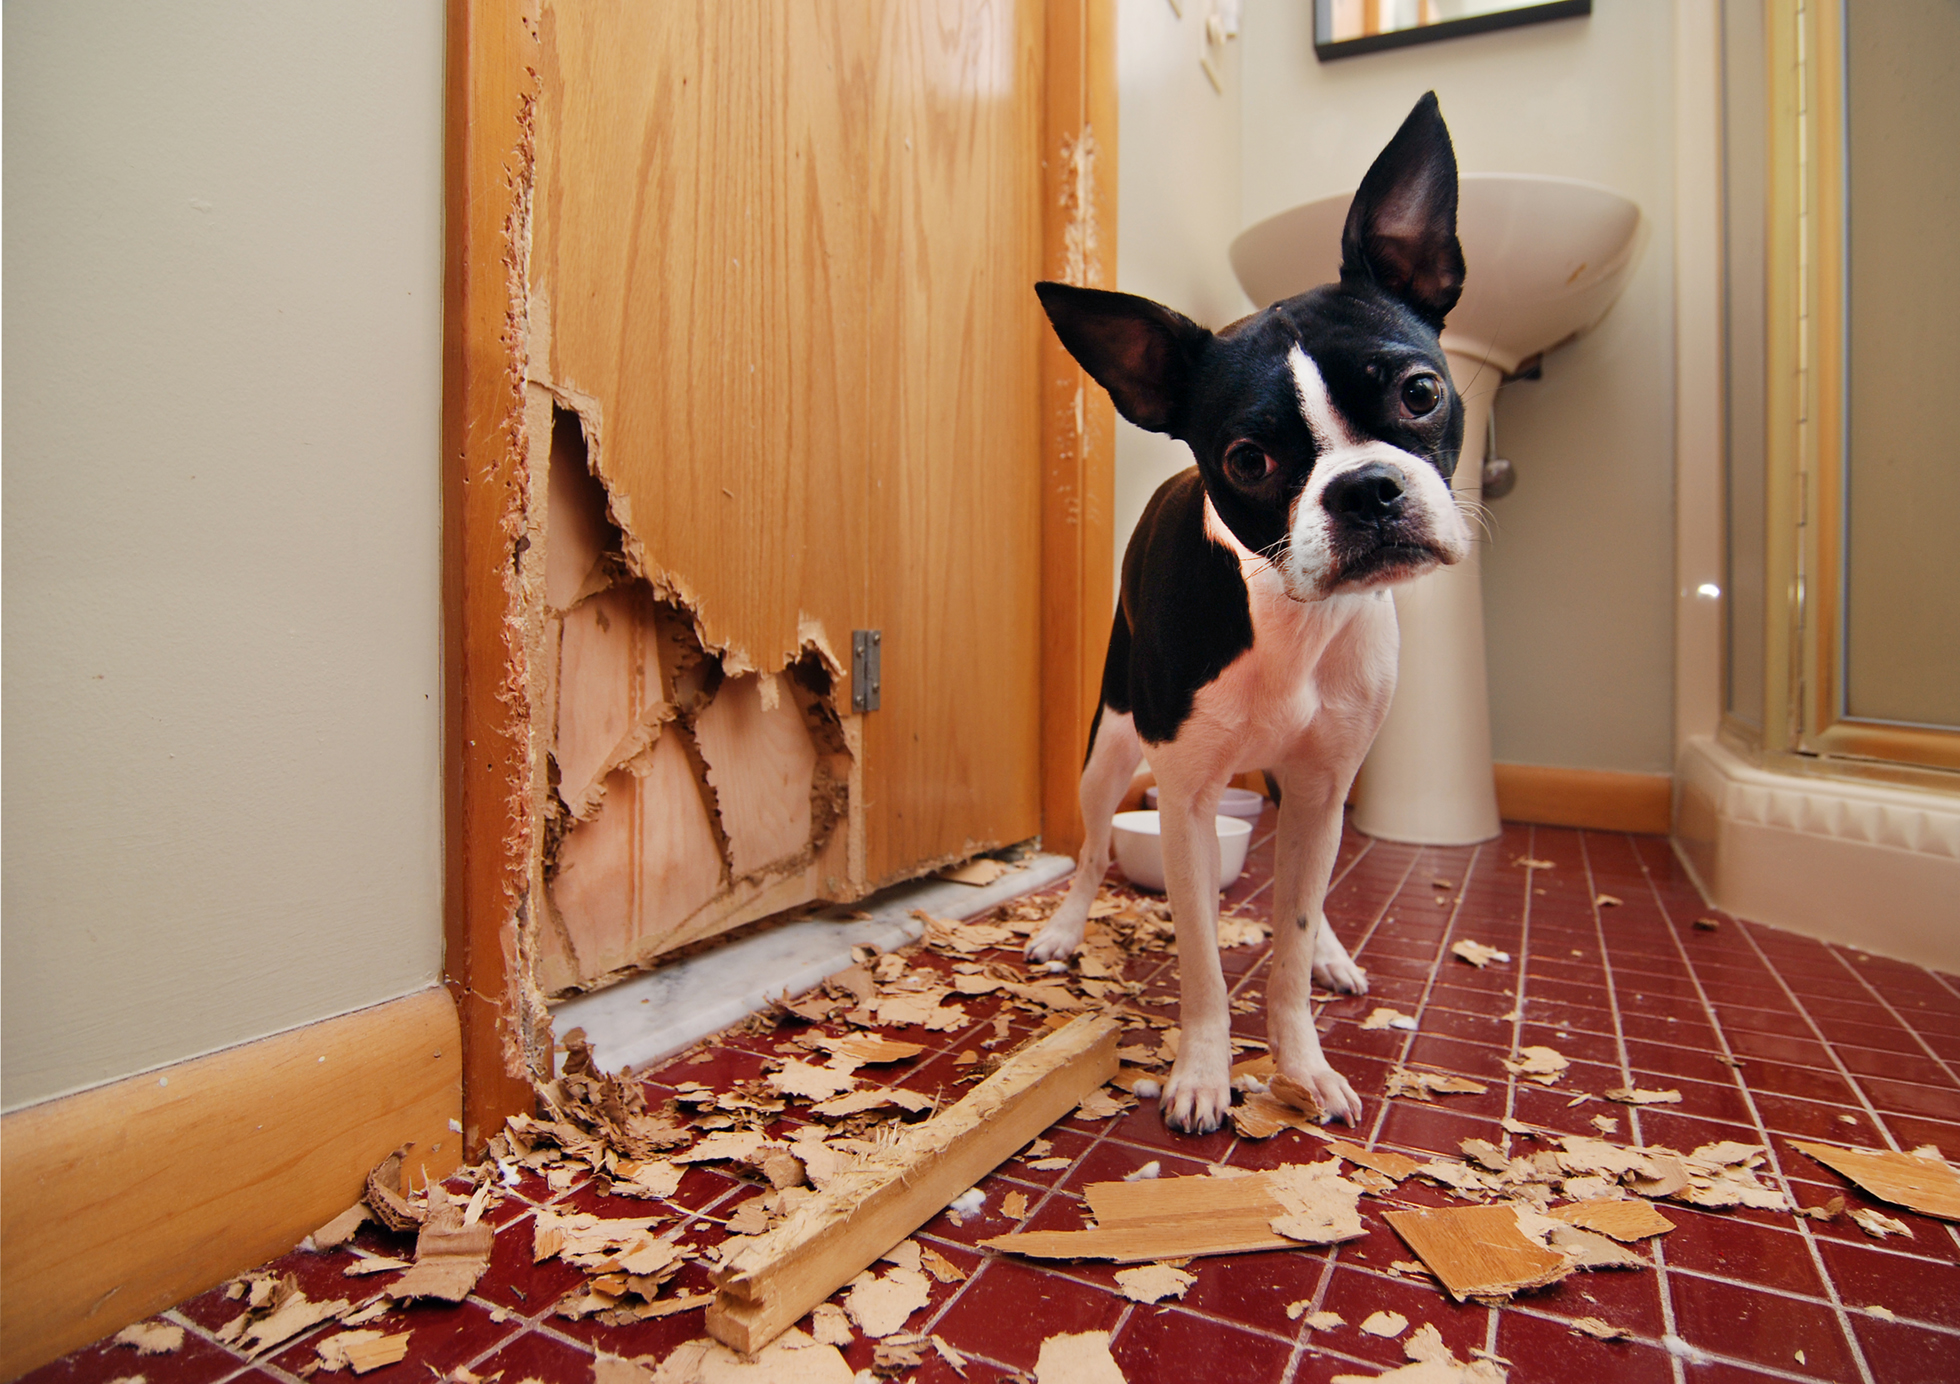 Black and white dog beside chewed up, clawed wooden door